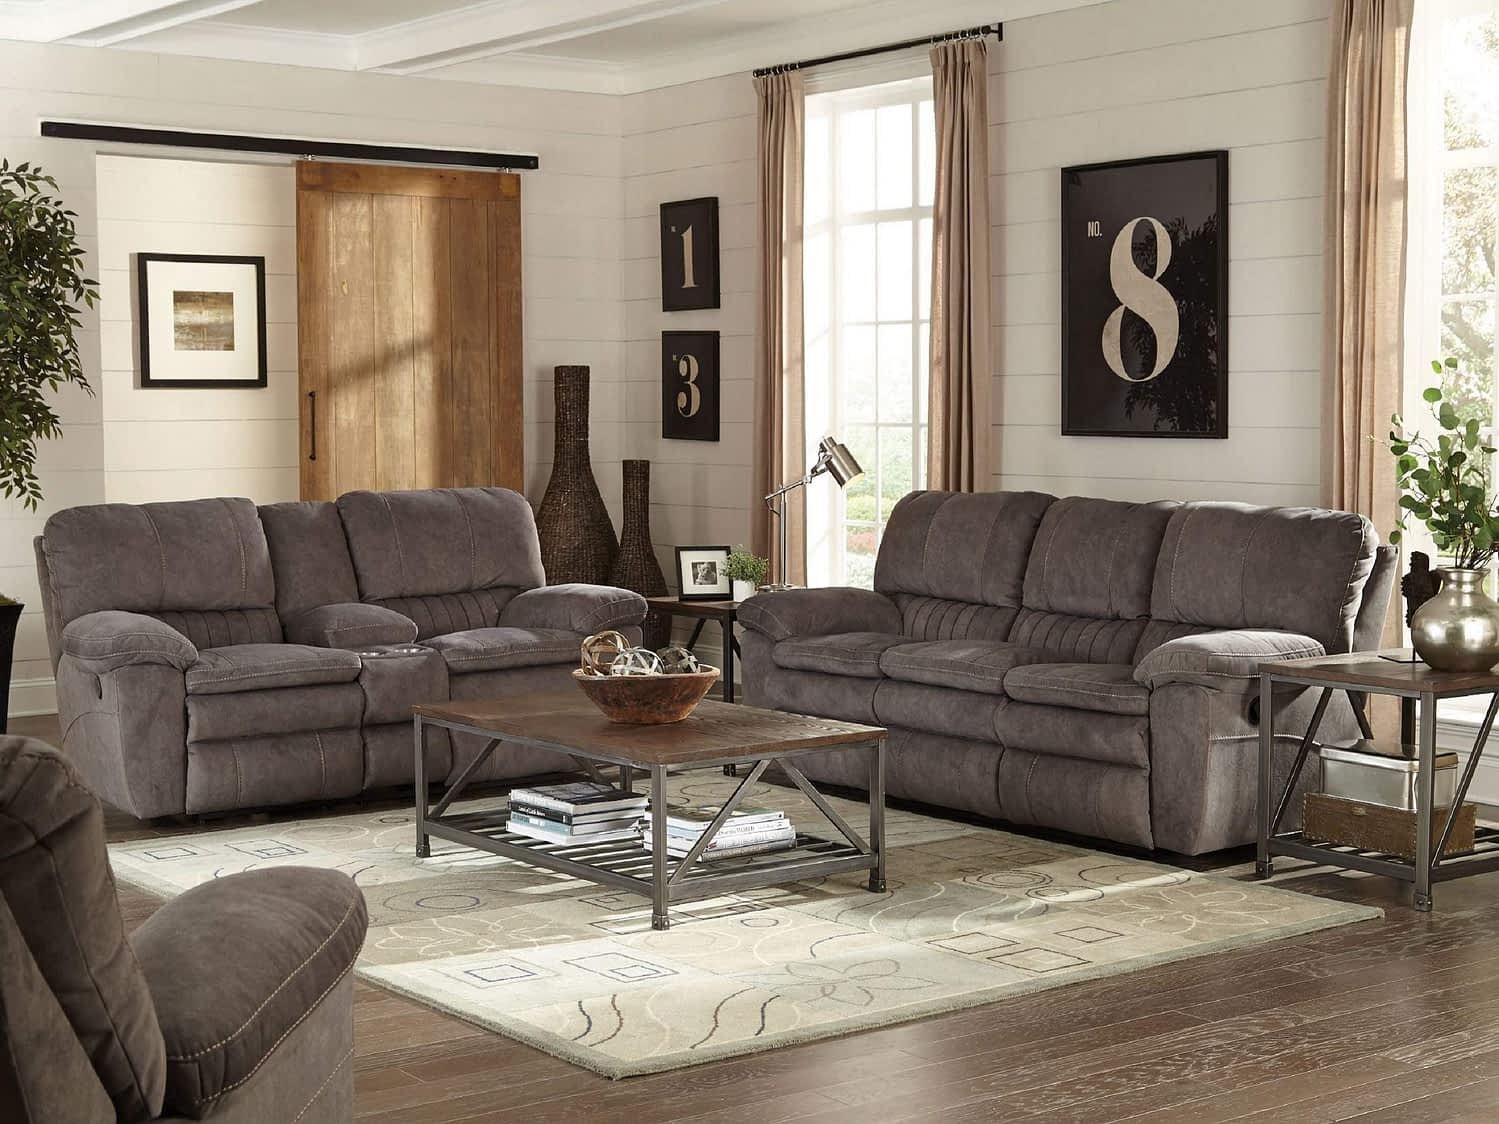 ZOLA Reclining Sofa & Love-seat with Console